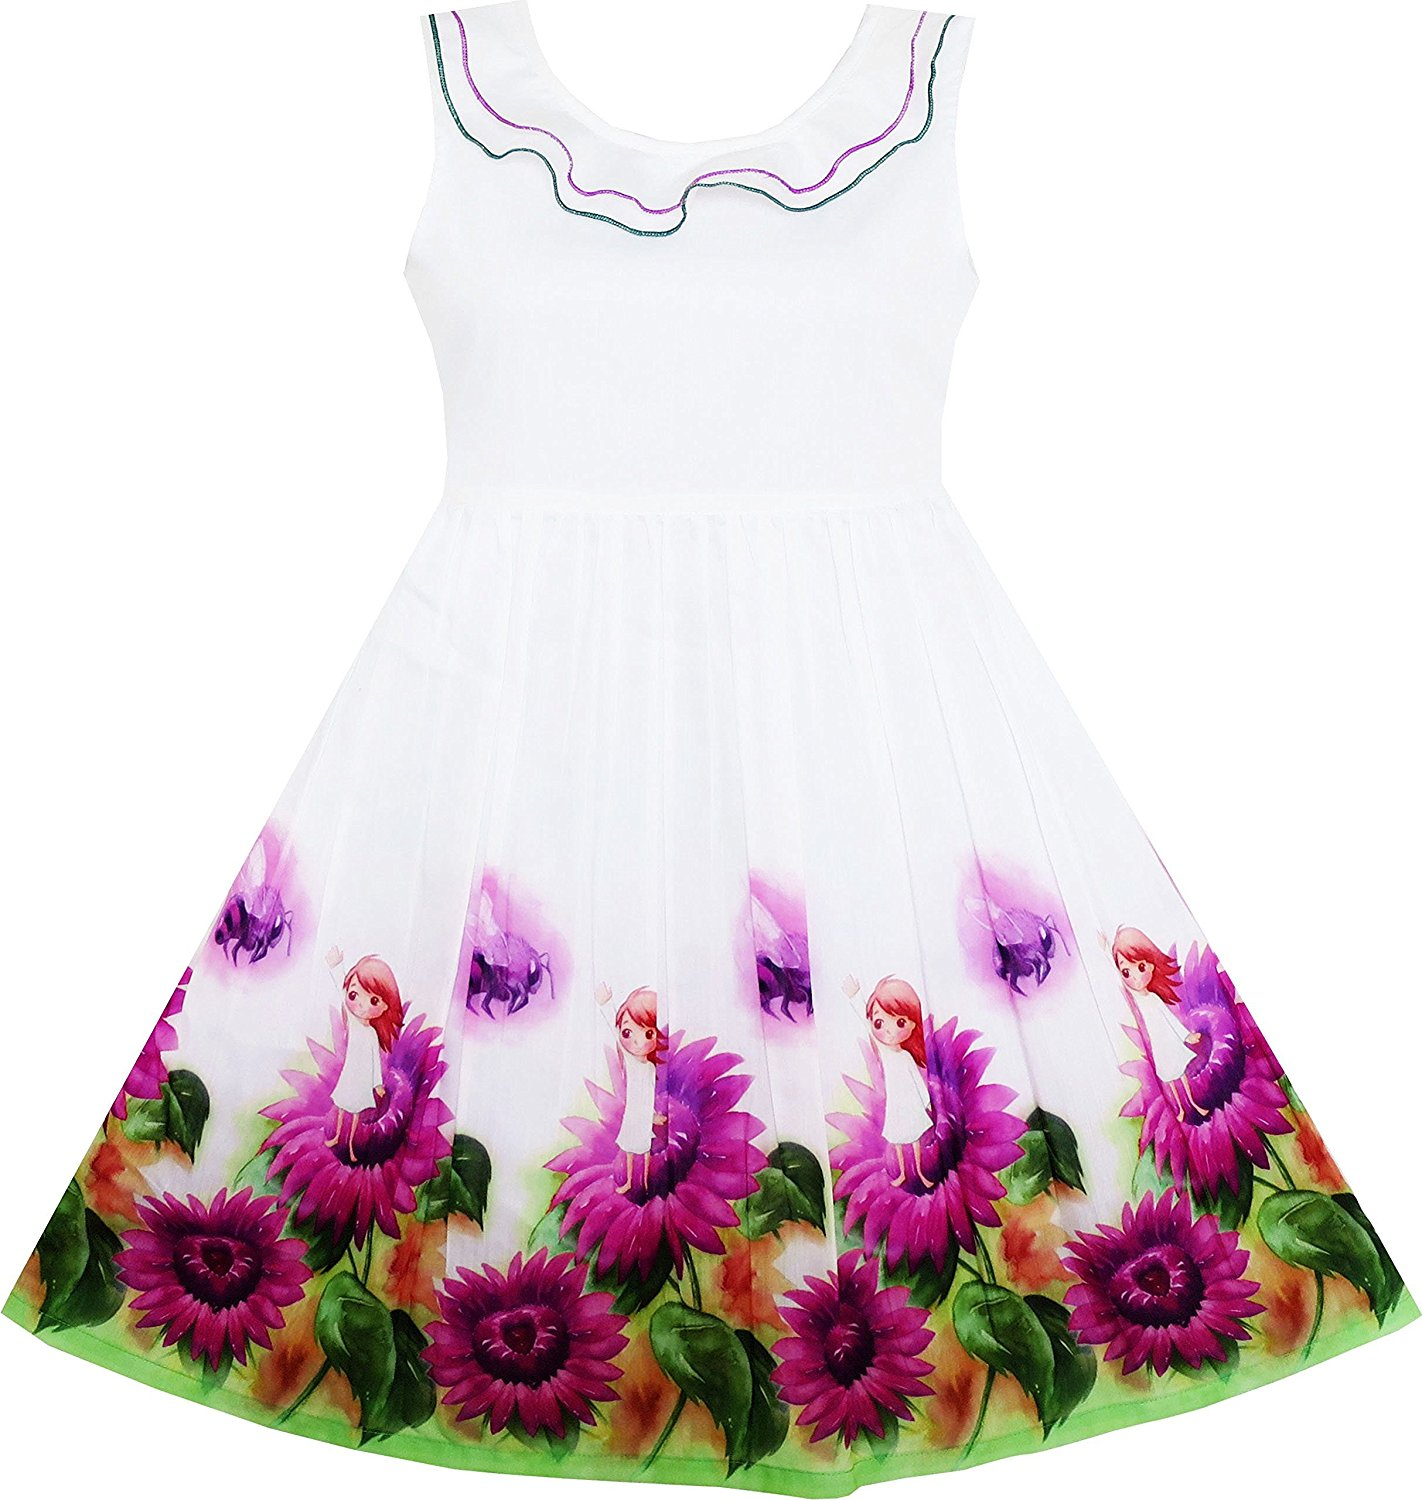 f7a9edc81c3 ... Double Bow Tie Party Sundress.  10.99. Sunny Fashion Girls Dress Rose  Flower Print Butterfly Embroidery Purple